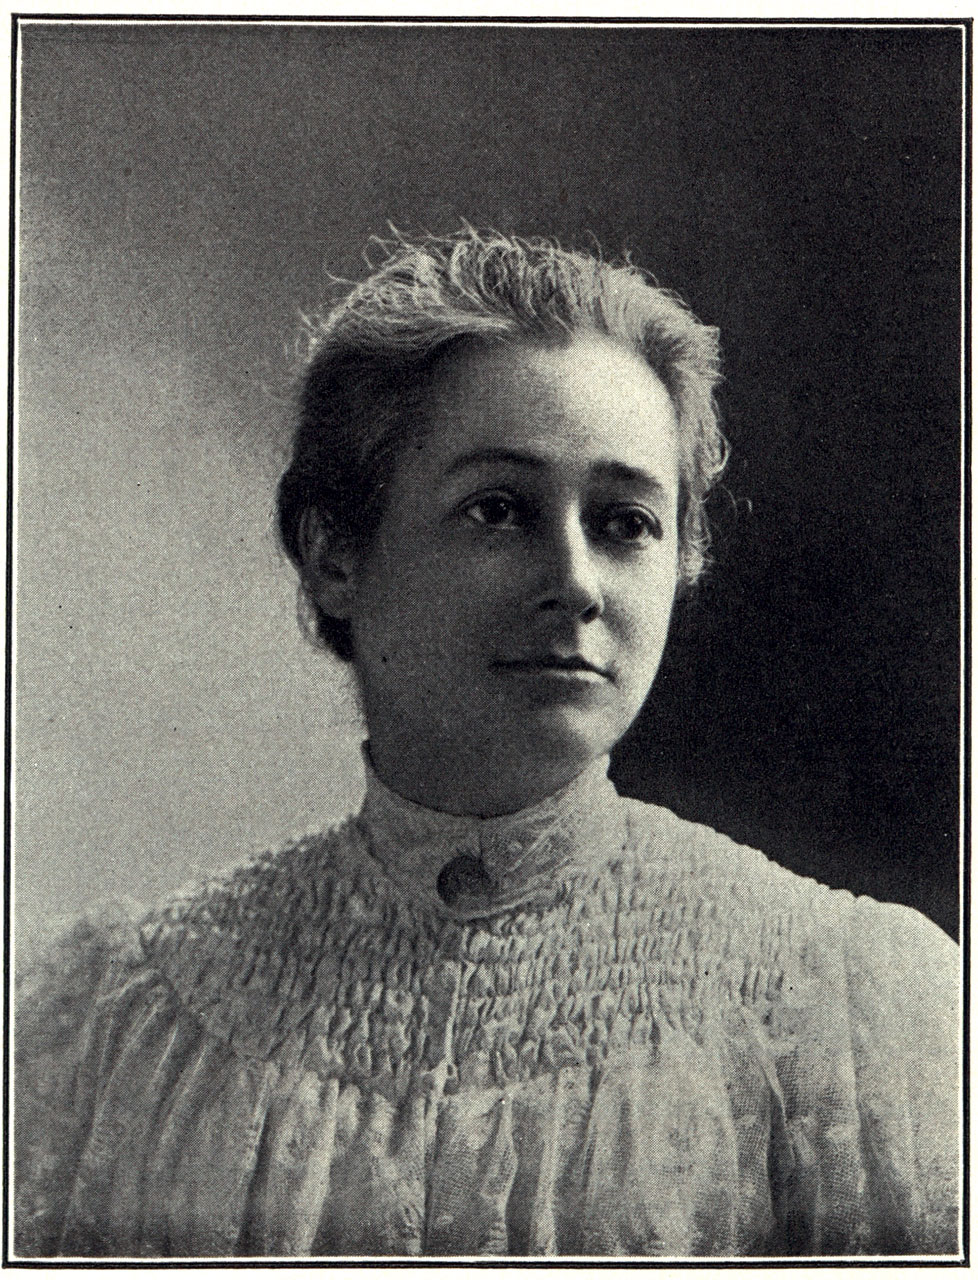 FLORENCE MERRIAM BAILEY (1863–1948). Florence Merriam Bailey began her ornithology career while a college student. She established the Smith College Audubon Society in 1886 after becoming alarmed by the numbers of birds and feathers that adorned fellow students' hats. Distinguished by her reverence for scientific observation, many of her books, including  Birds Through an Opera Glass  (1889), became important field guides.